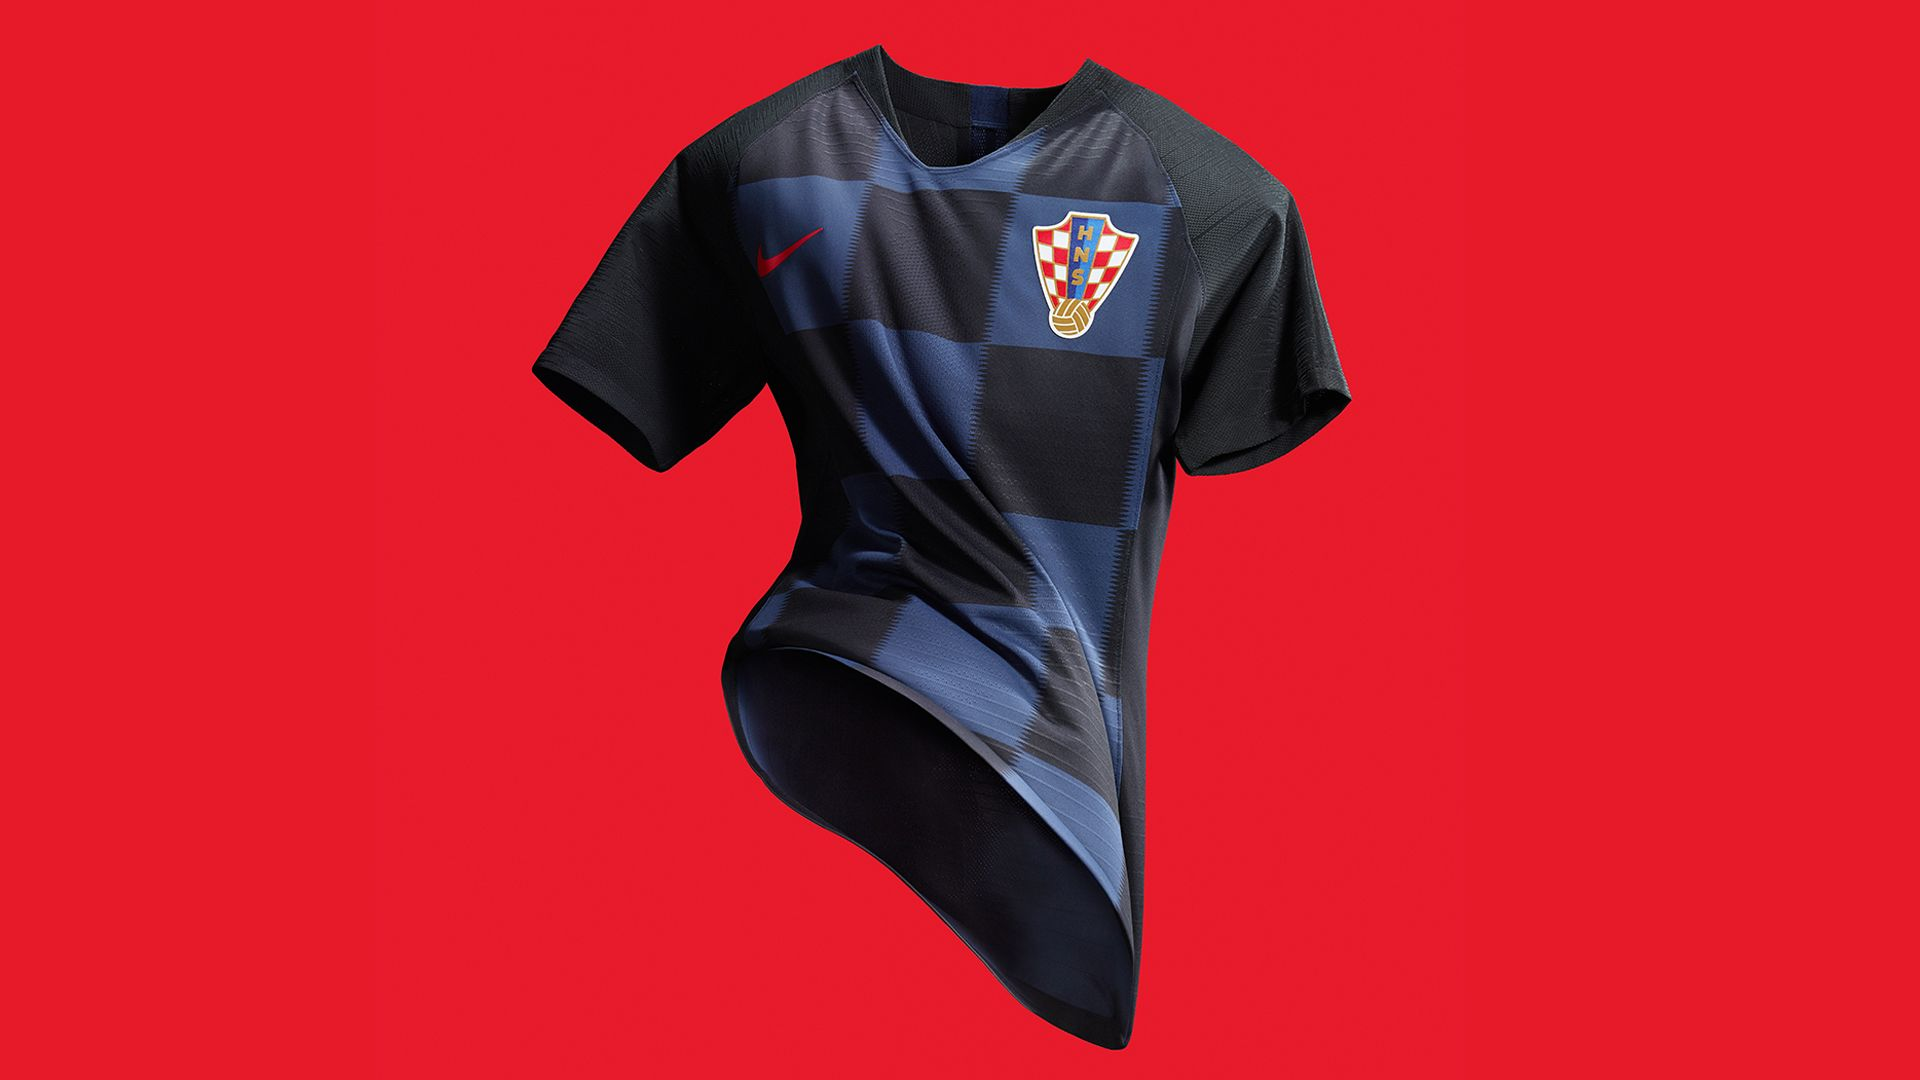 7ea87ecd0 2018 Croatia Stadium Away Kit. Nike.com GB